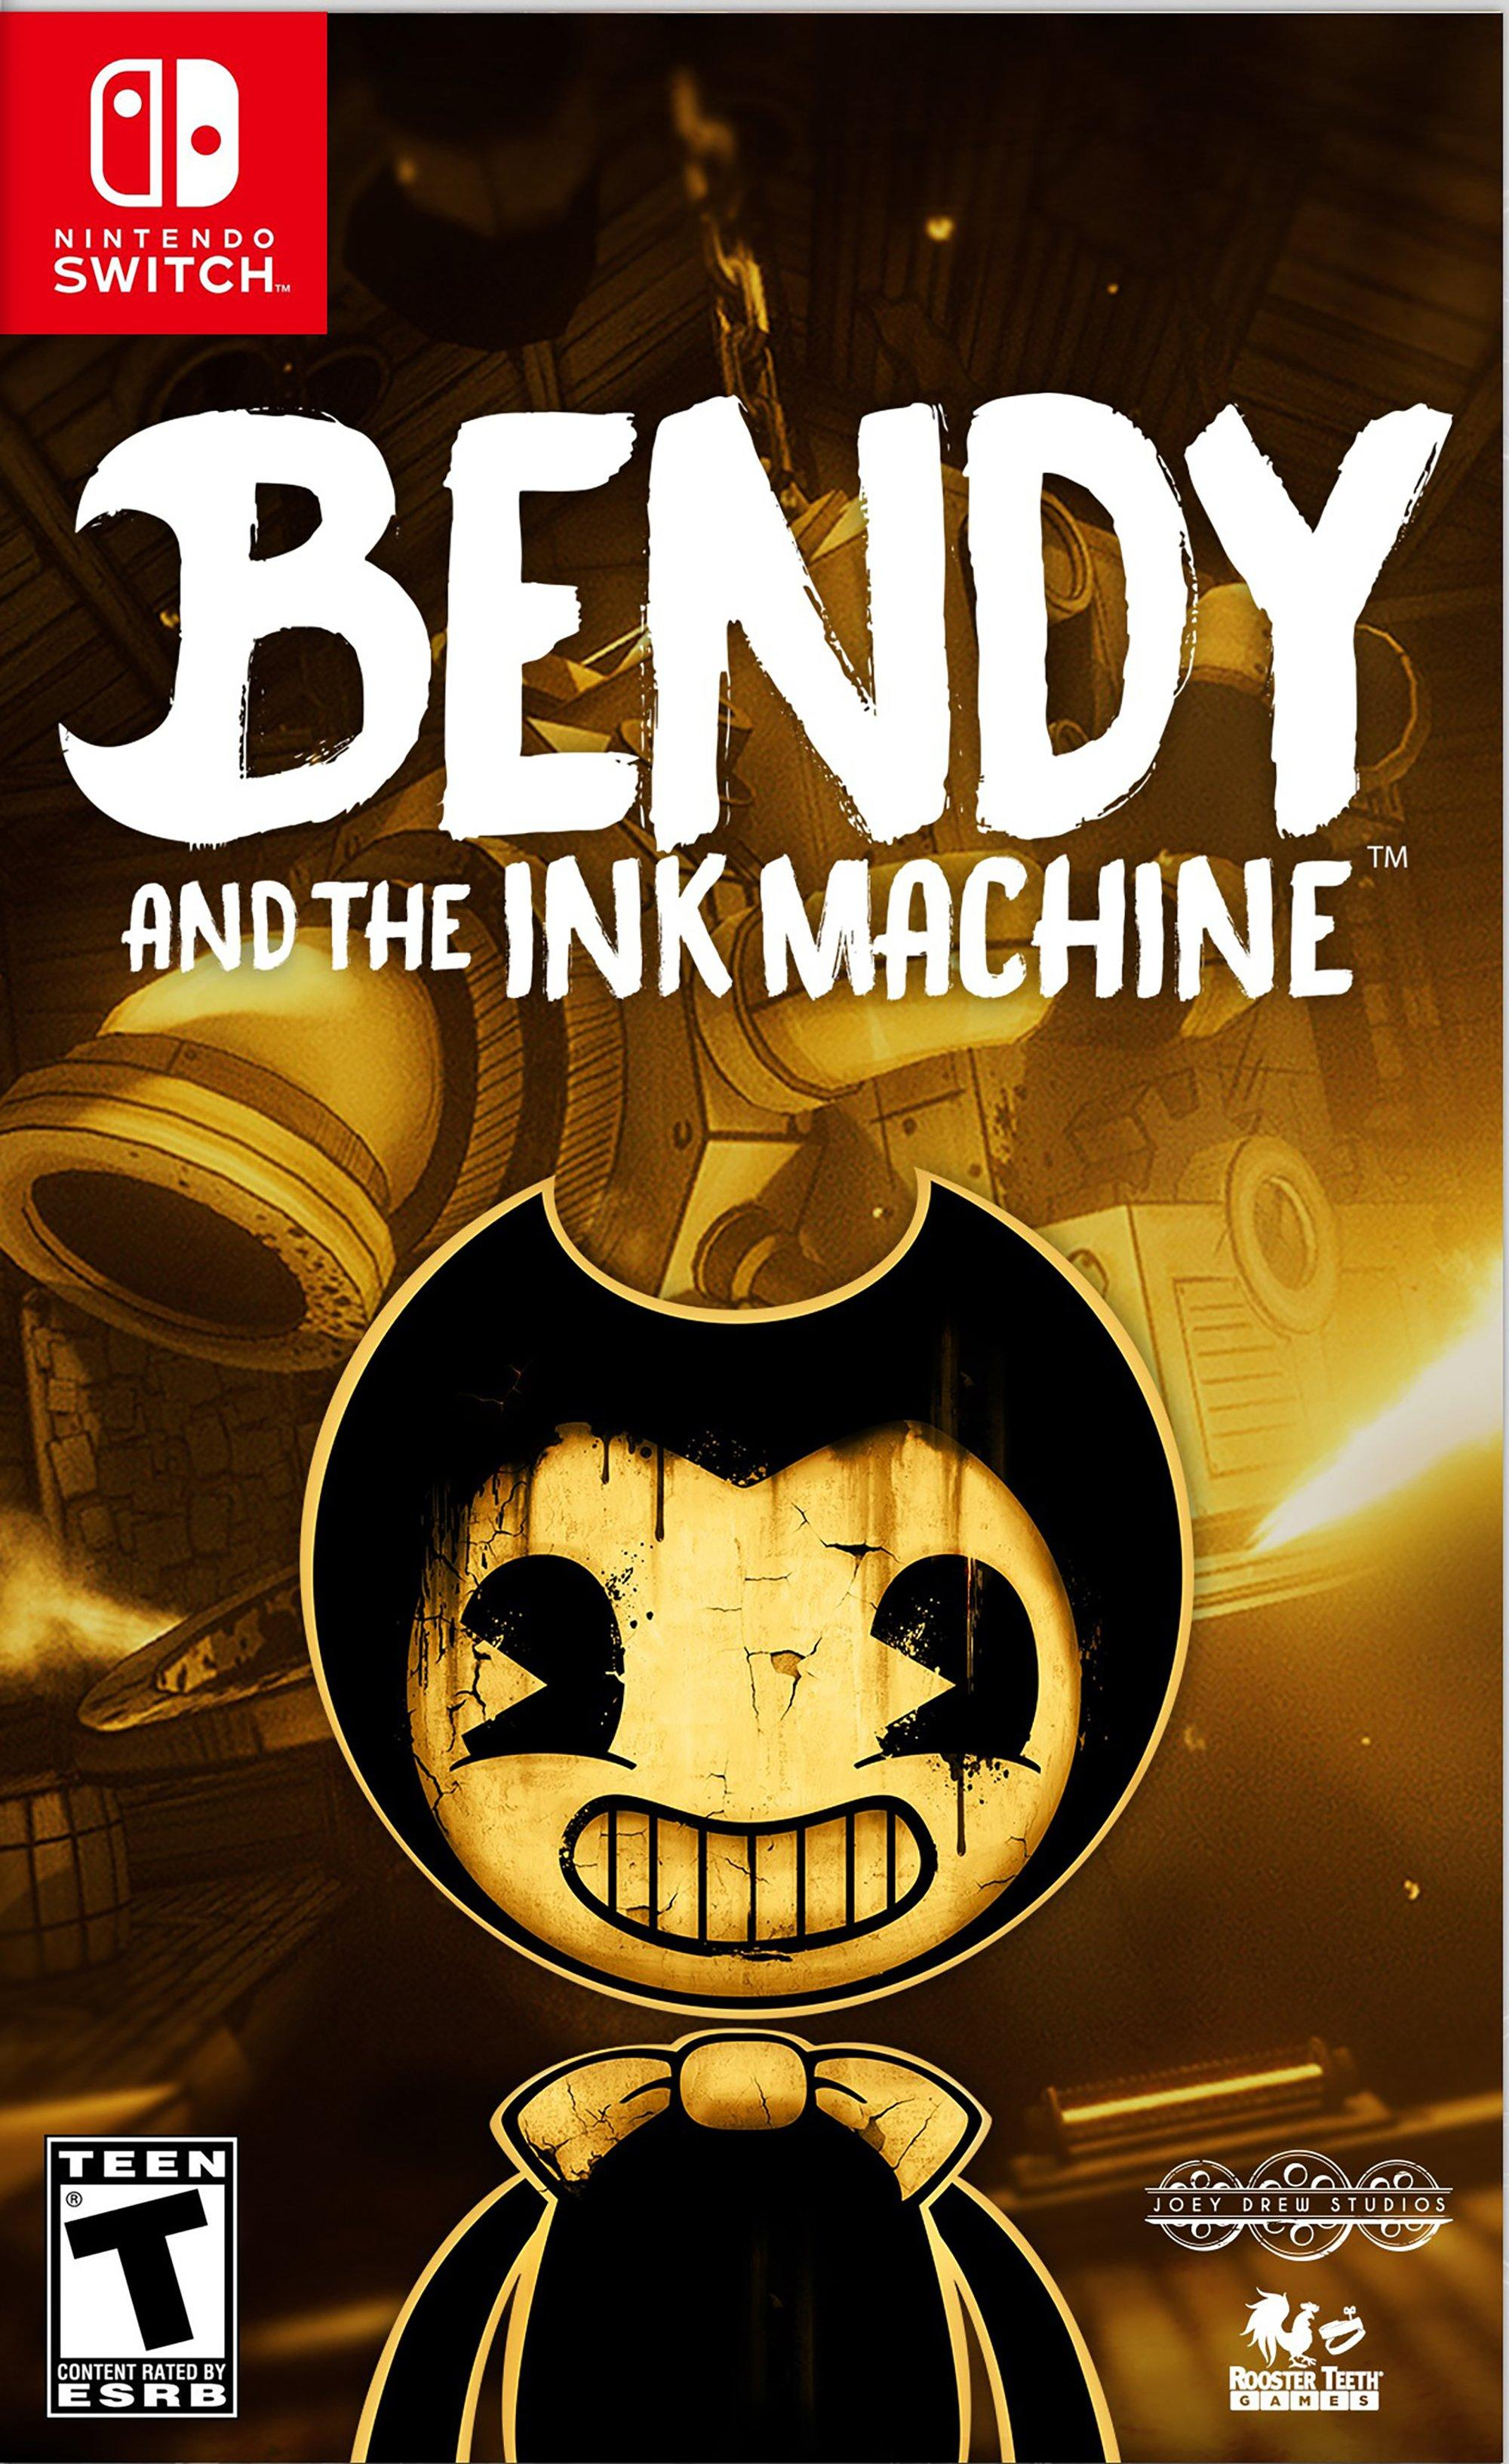 100 Pictures of Fotos Bendy And The Ink Machine